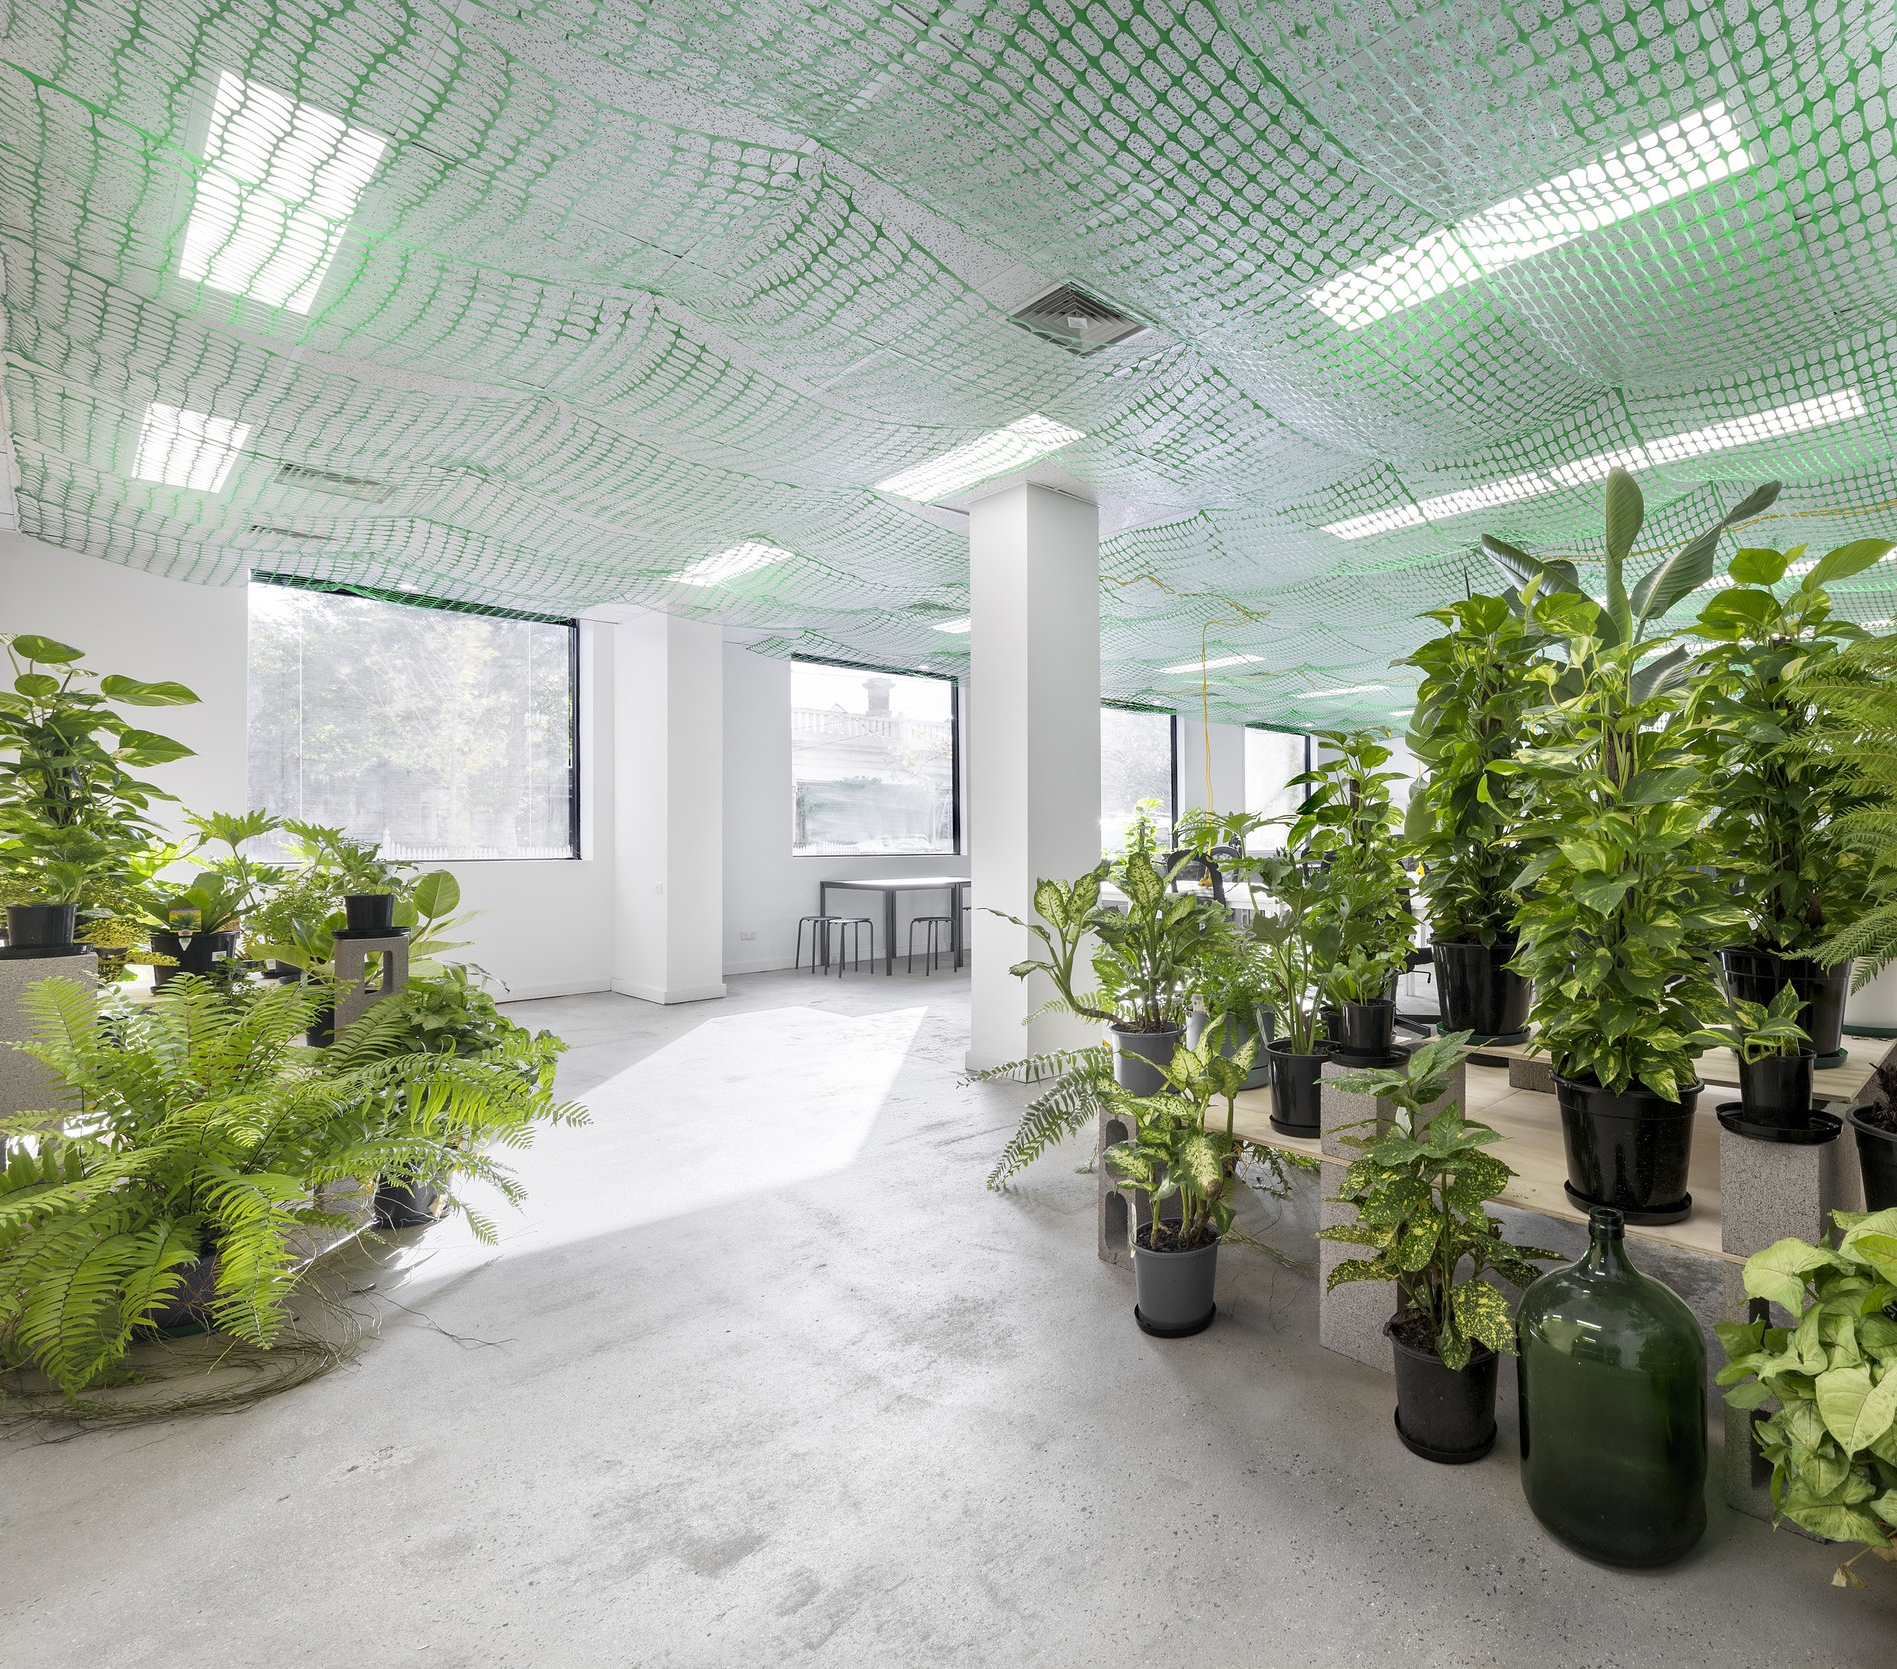 Co-working.Boardroom Hire.Business Mailing Address.1/430 Rae Street, Fitzroy North, VIC 3068, Australia - We believe in a future where community, personal and environmental well-being are one.